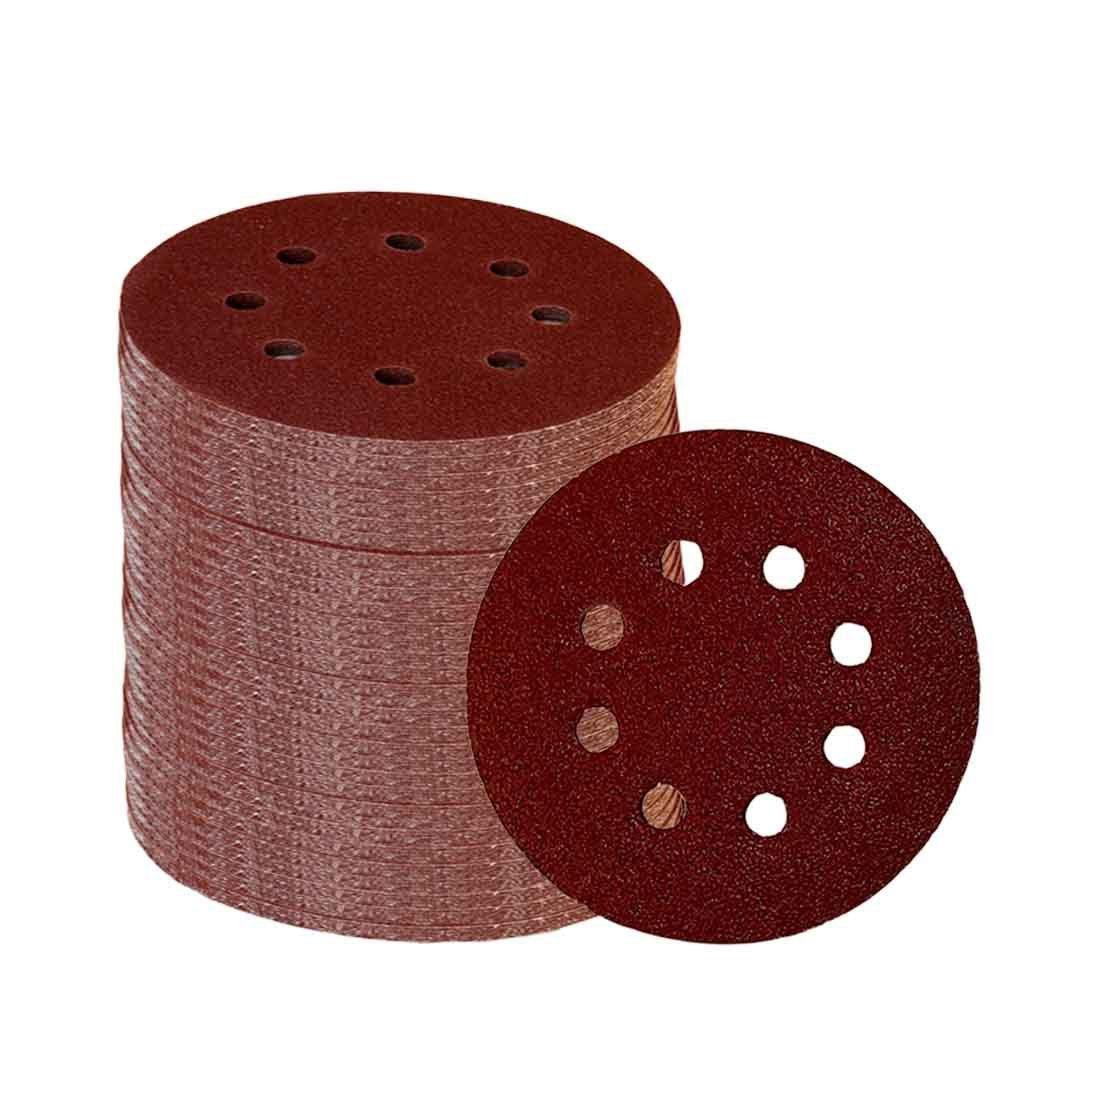 High Five Store 40pcs 5inch 320~2000Grit Round Sanding Discs Sandpapers Polishing with 8 Holes New Product